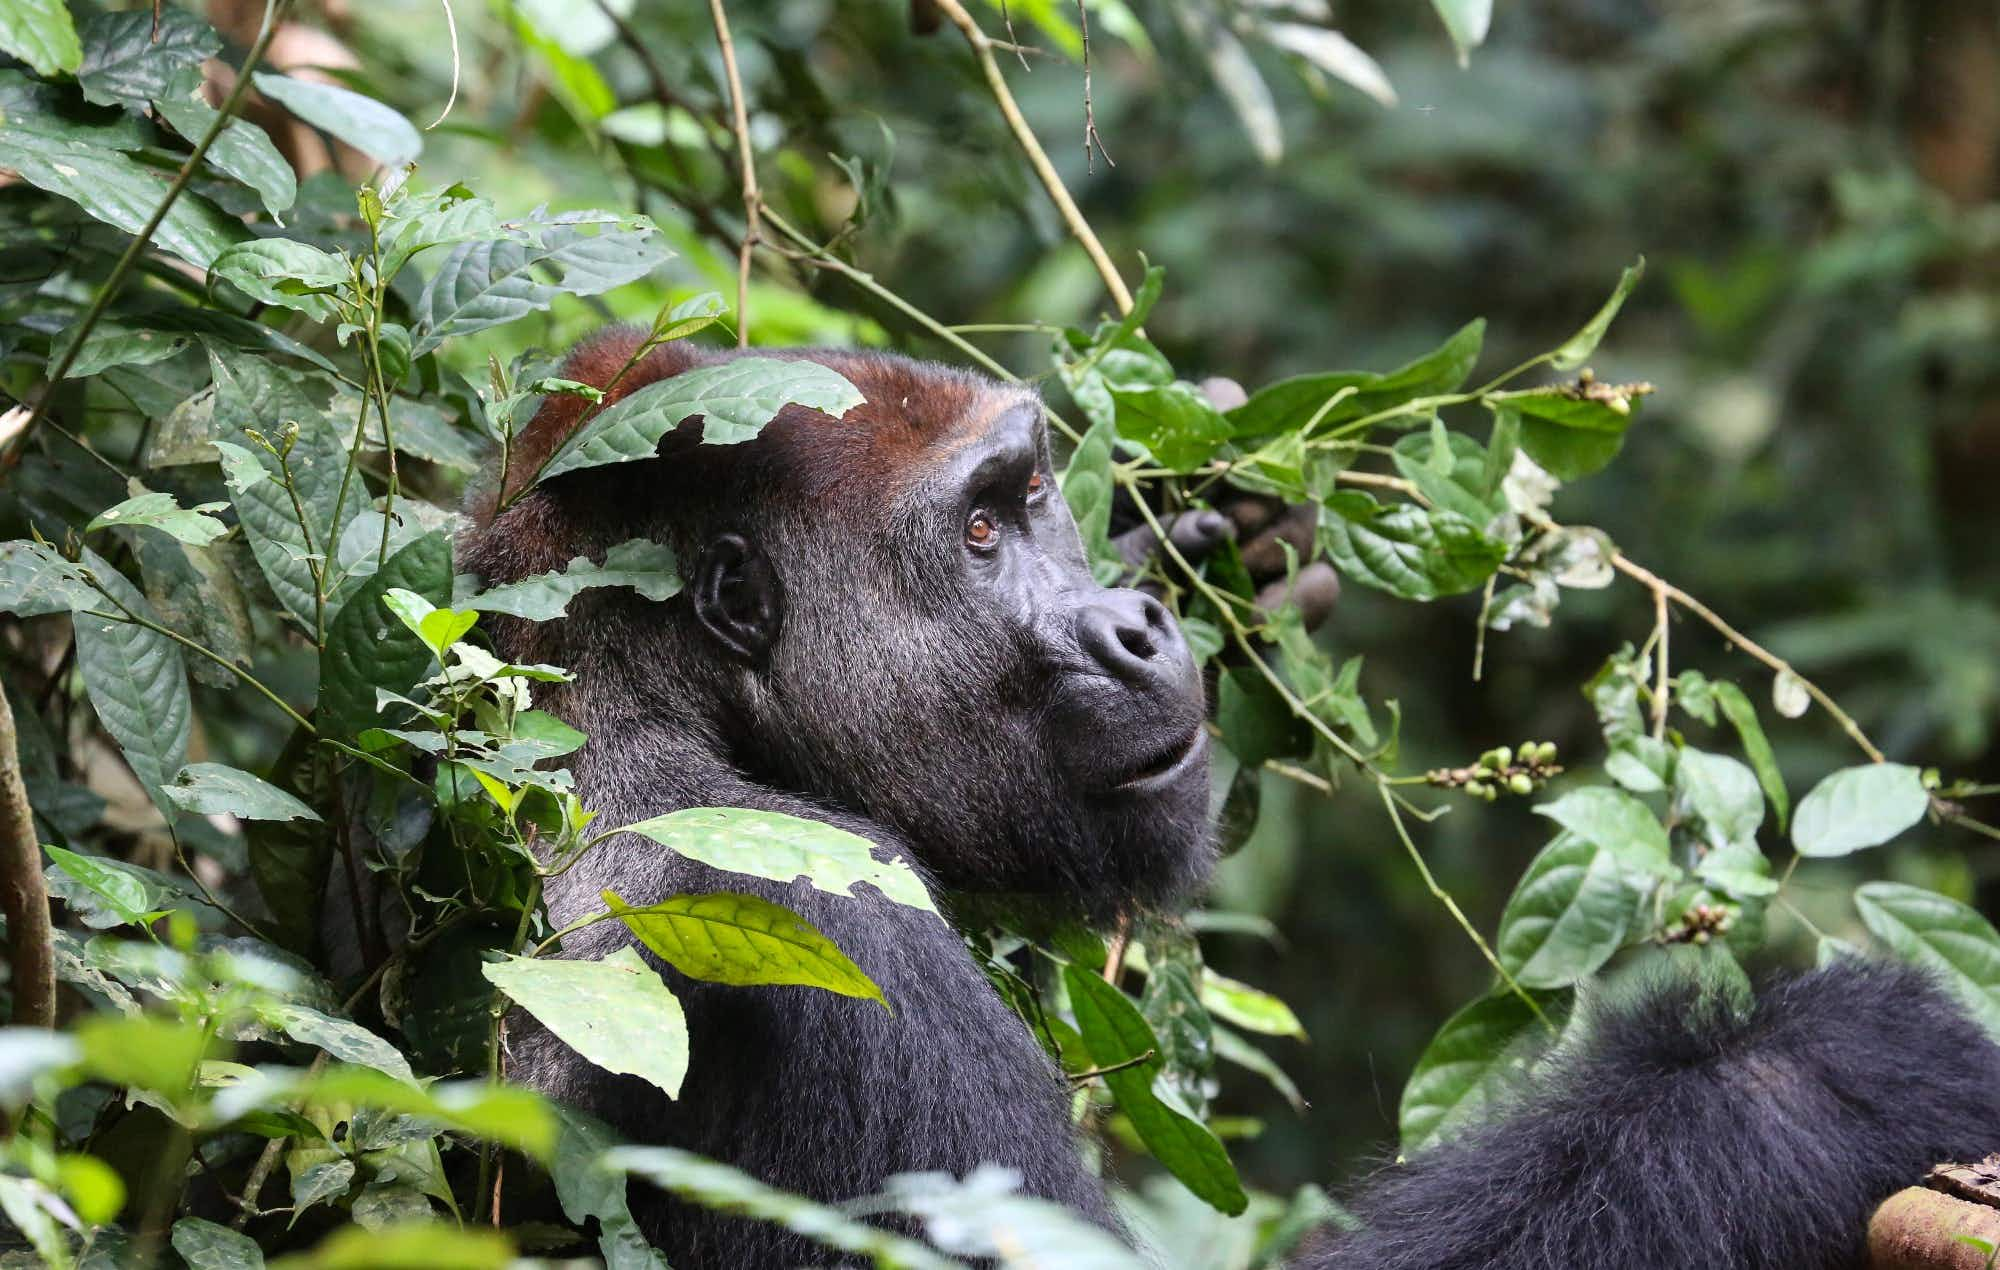 Study reveals good news for the population of gorillas and chimps of West Africa